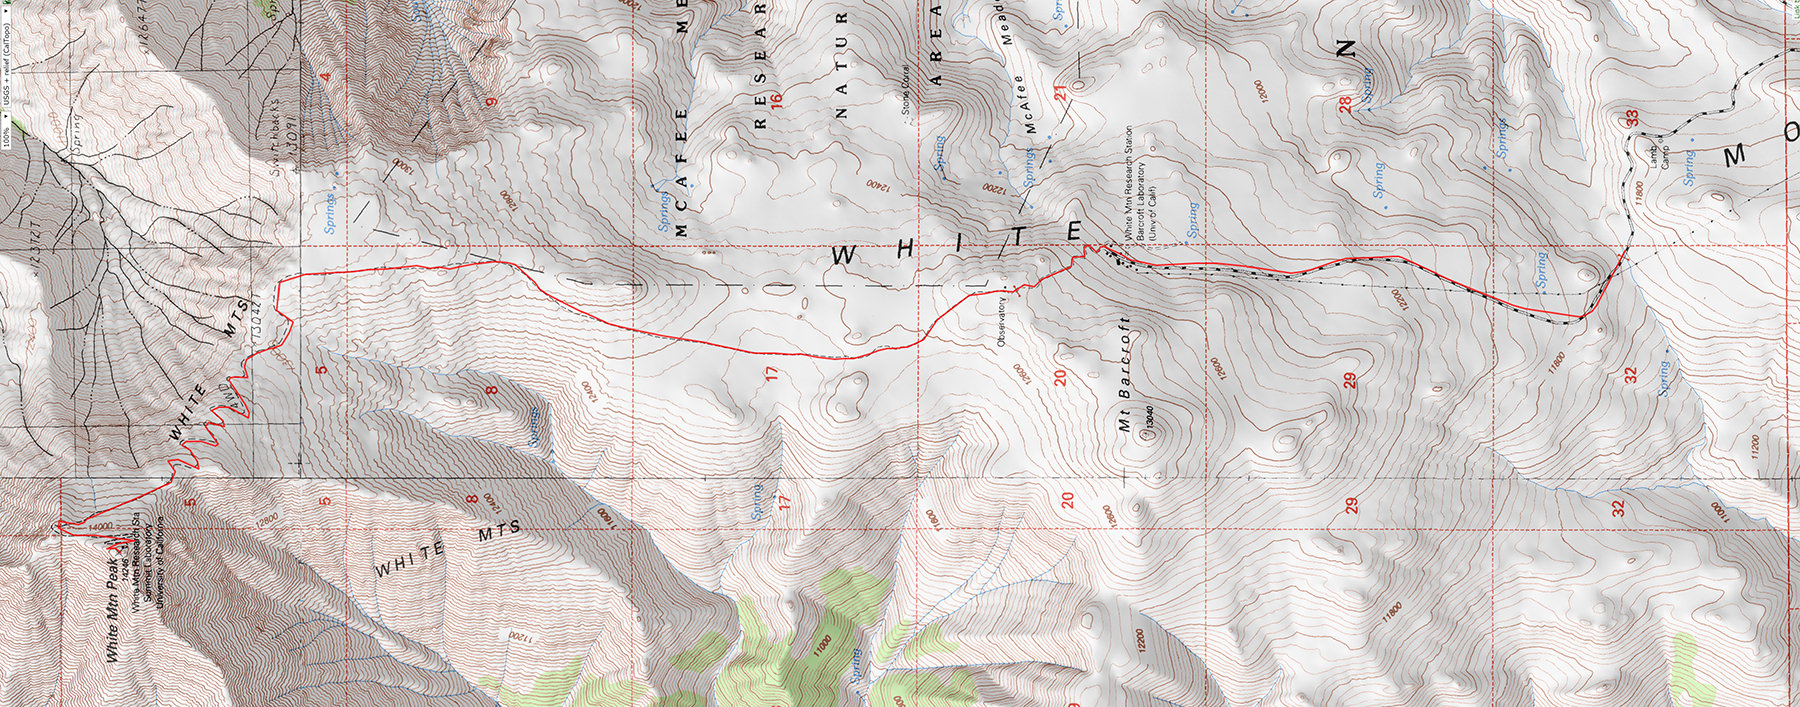 Trip Planning:  White Mountain Peak (14,252′) , July 11-12